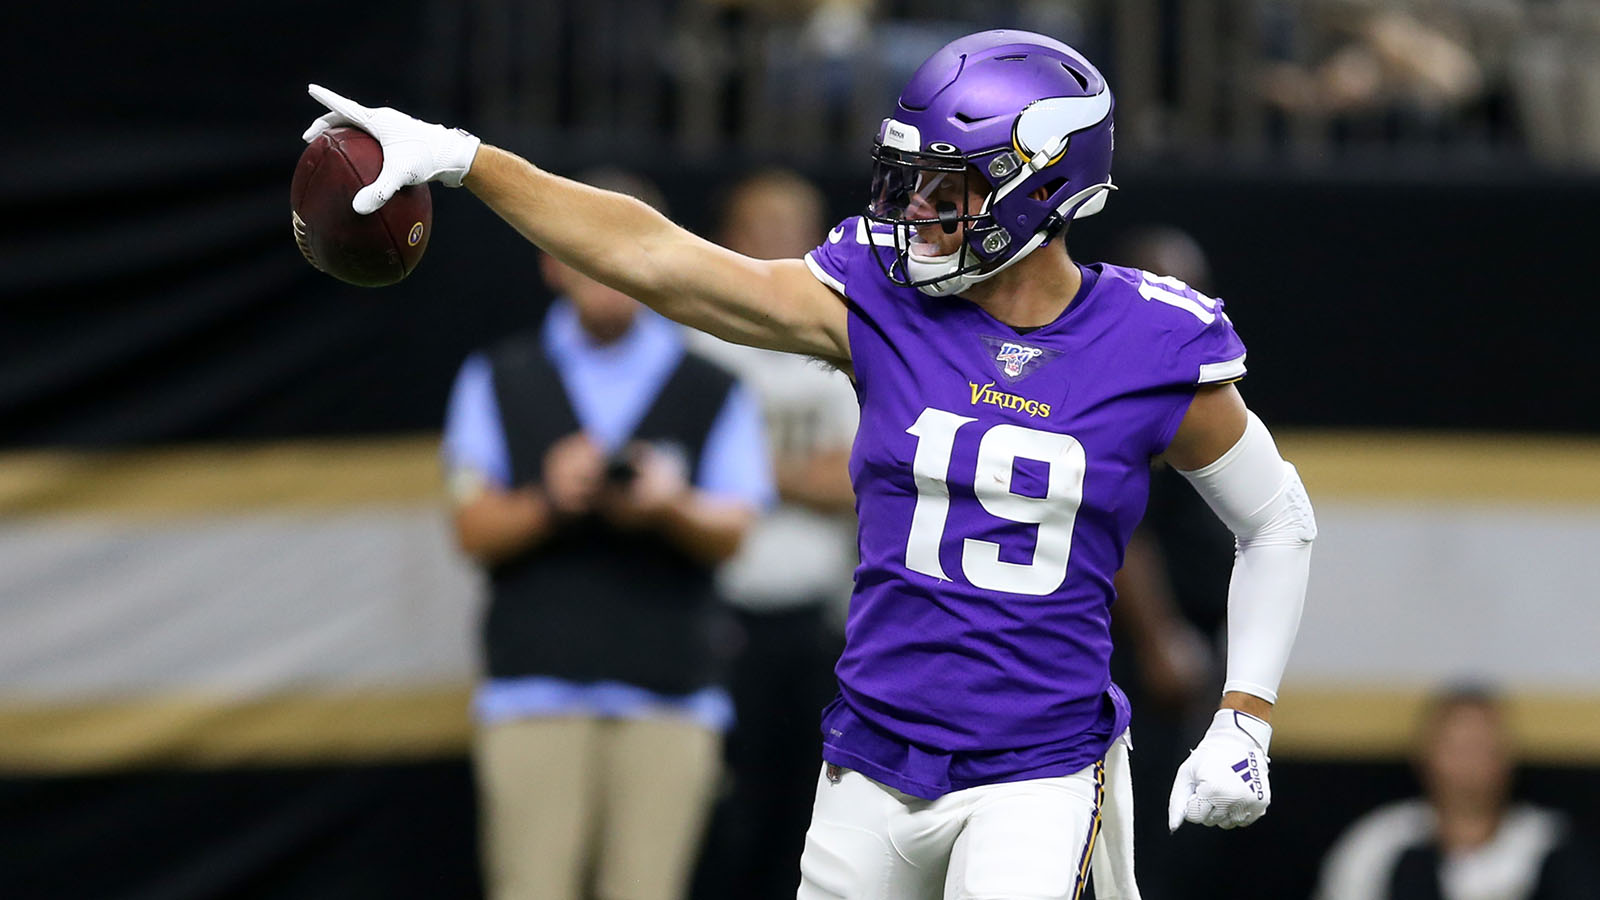 Aug 9, 2019; New Orleans, LA, USA; Minnesota Vikings wide receiver Adam Thielen (19) gestures after a catch against the New Orleans Saints in the first quarter at the Mercedes-Benz Superdome. Mandatory Credit: Chuck Cook-USA TODAY Sports